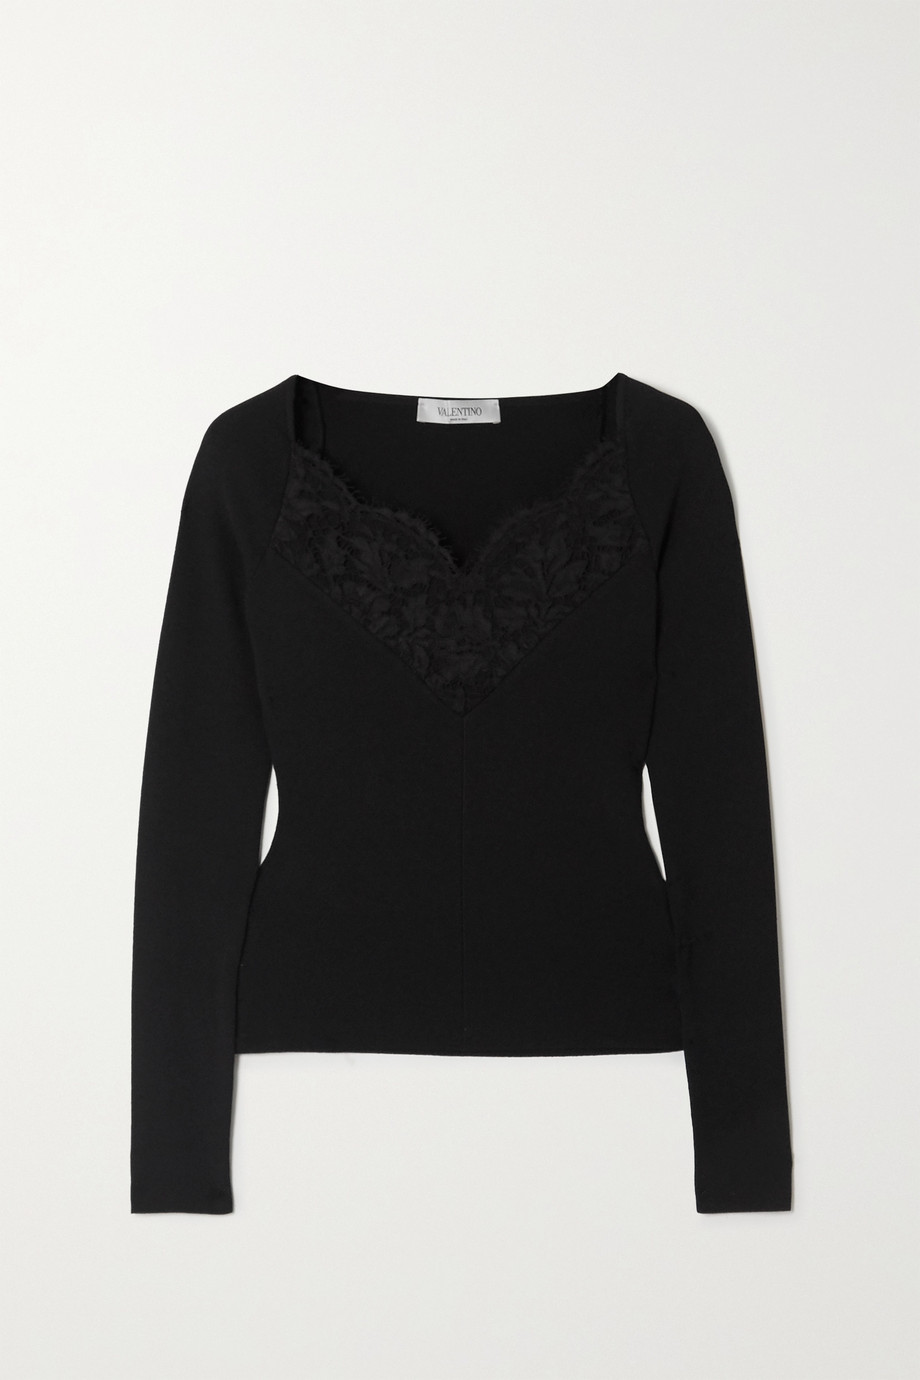 Valentino Lace-trimmed ribbed-knit top